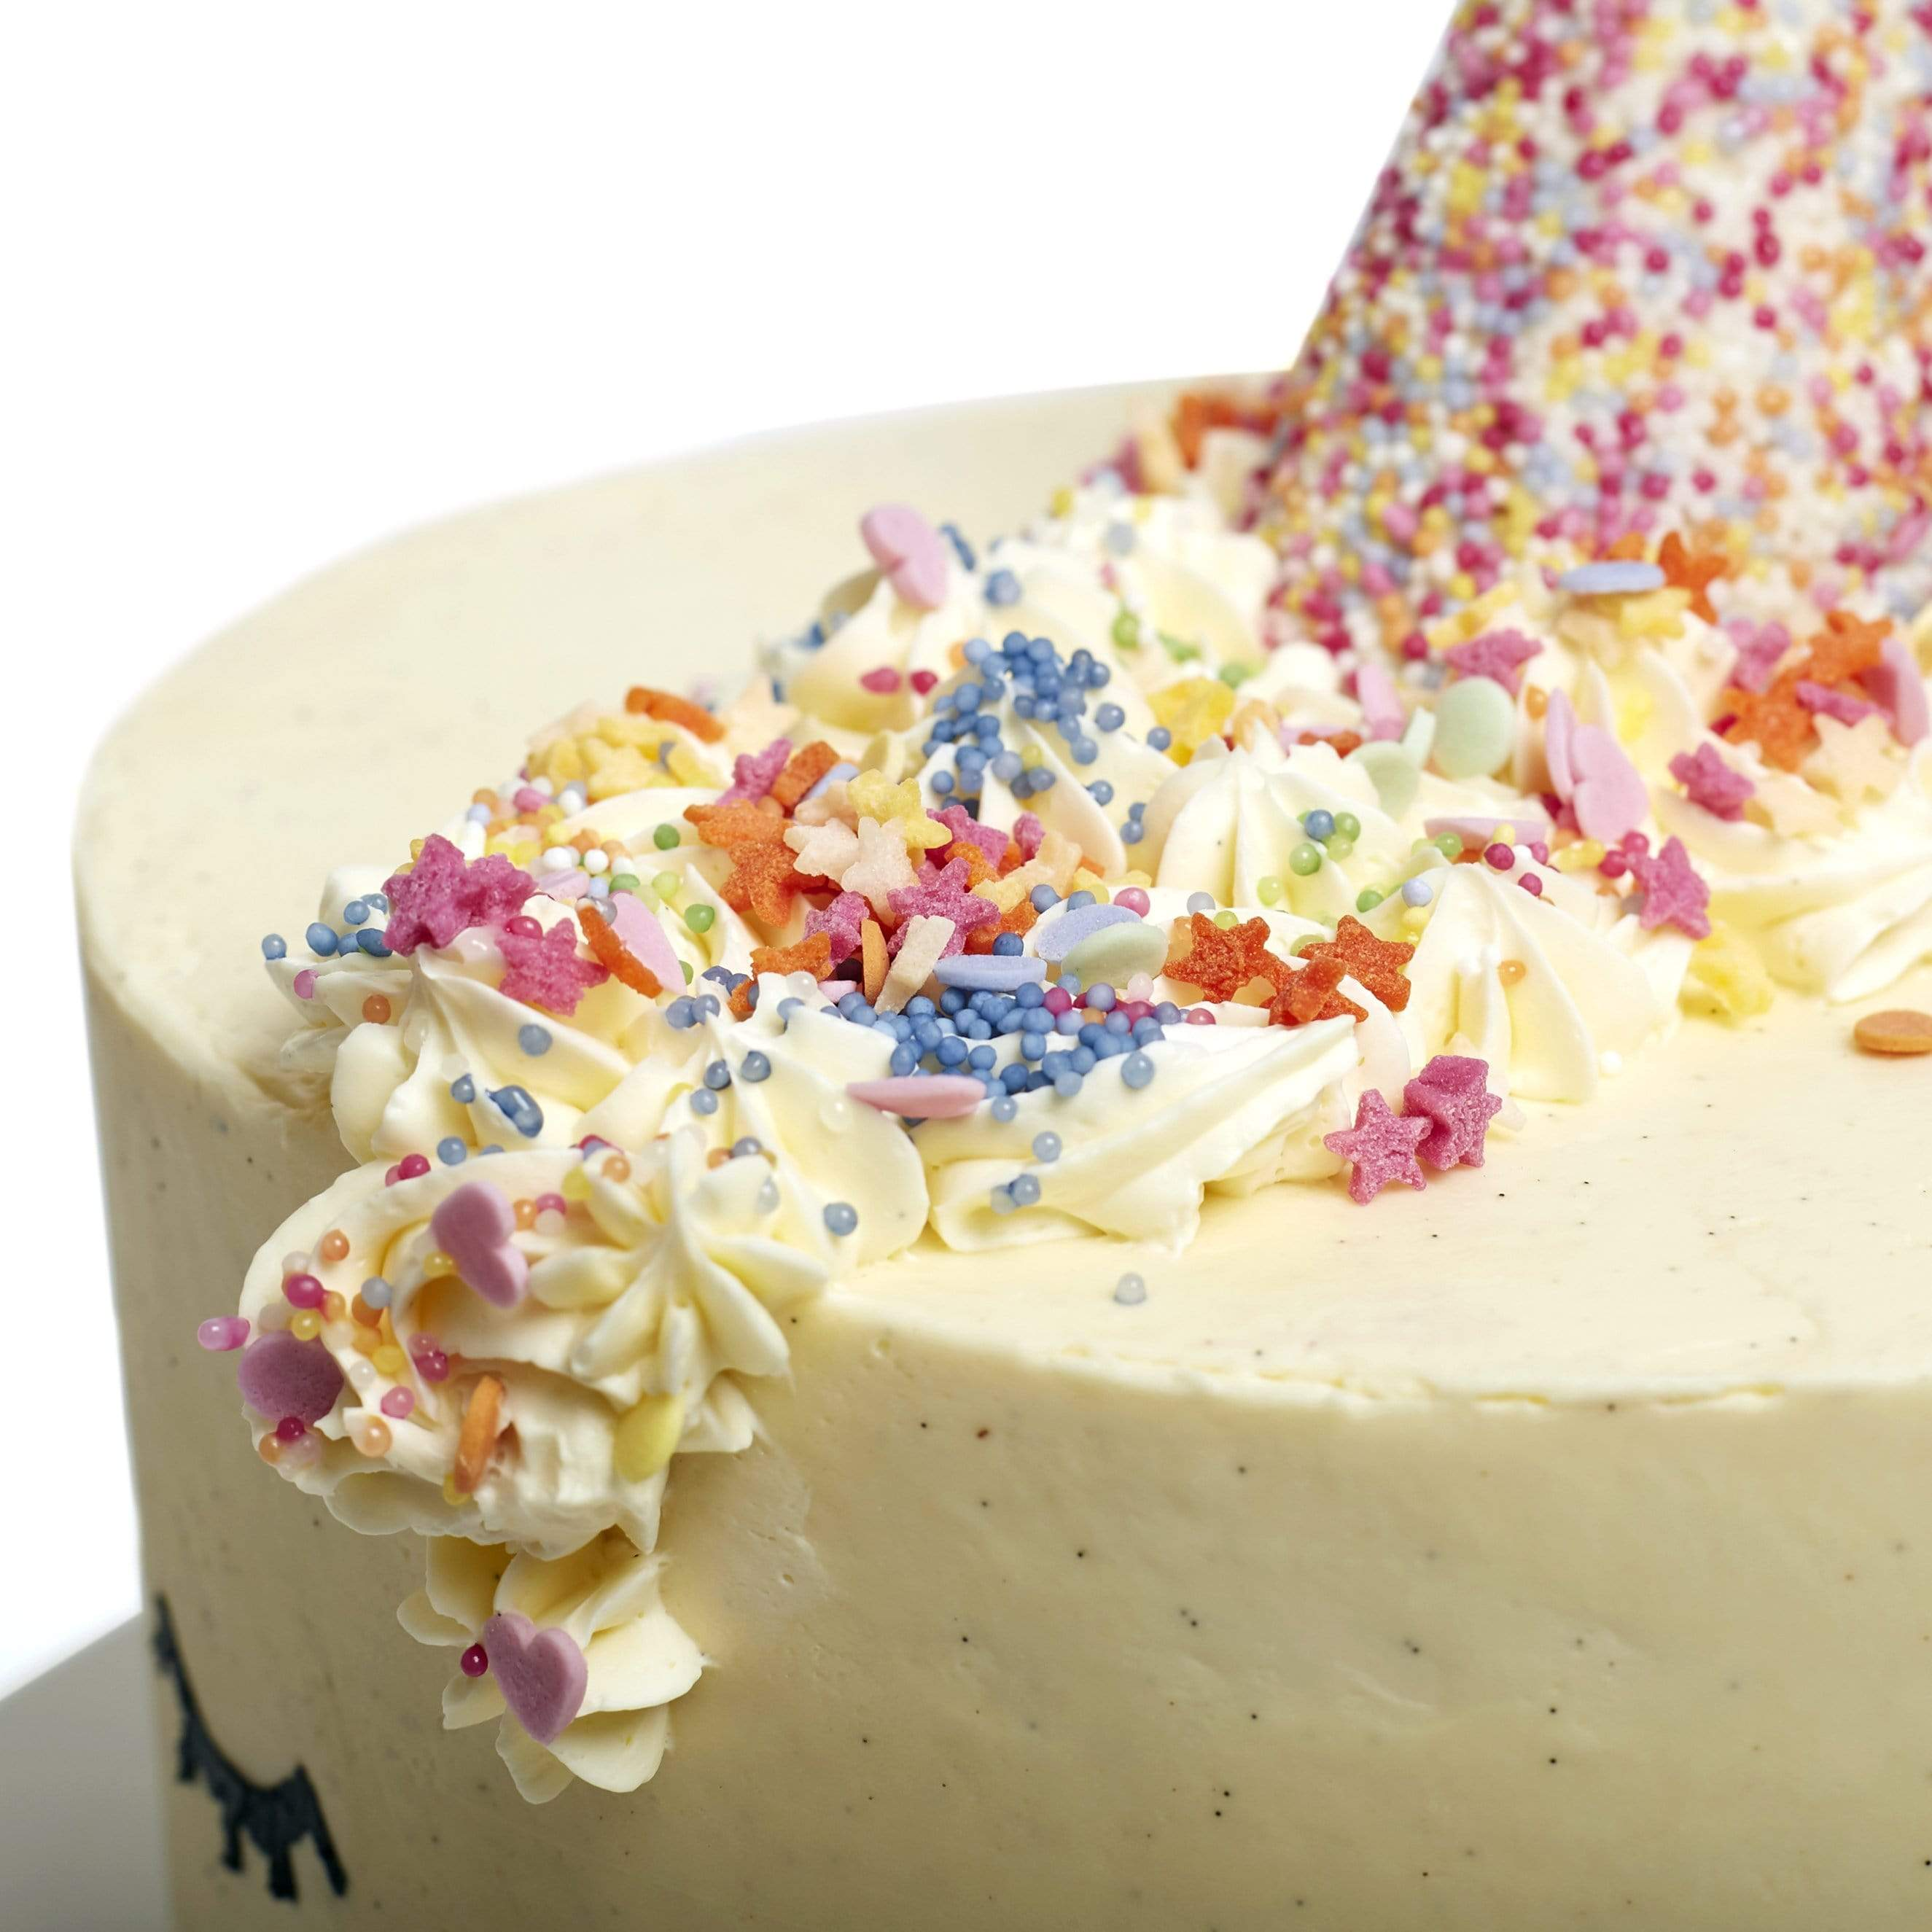 Remarkable Unicorn Birthday Cake Available In A Range Of Delicious Flavours Funny Birthday Cards Online Unhofree Goldxyz